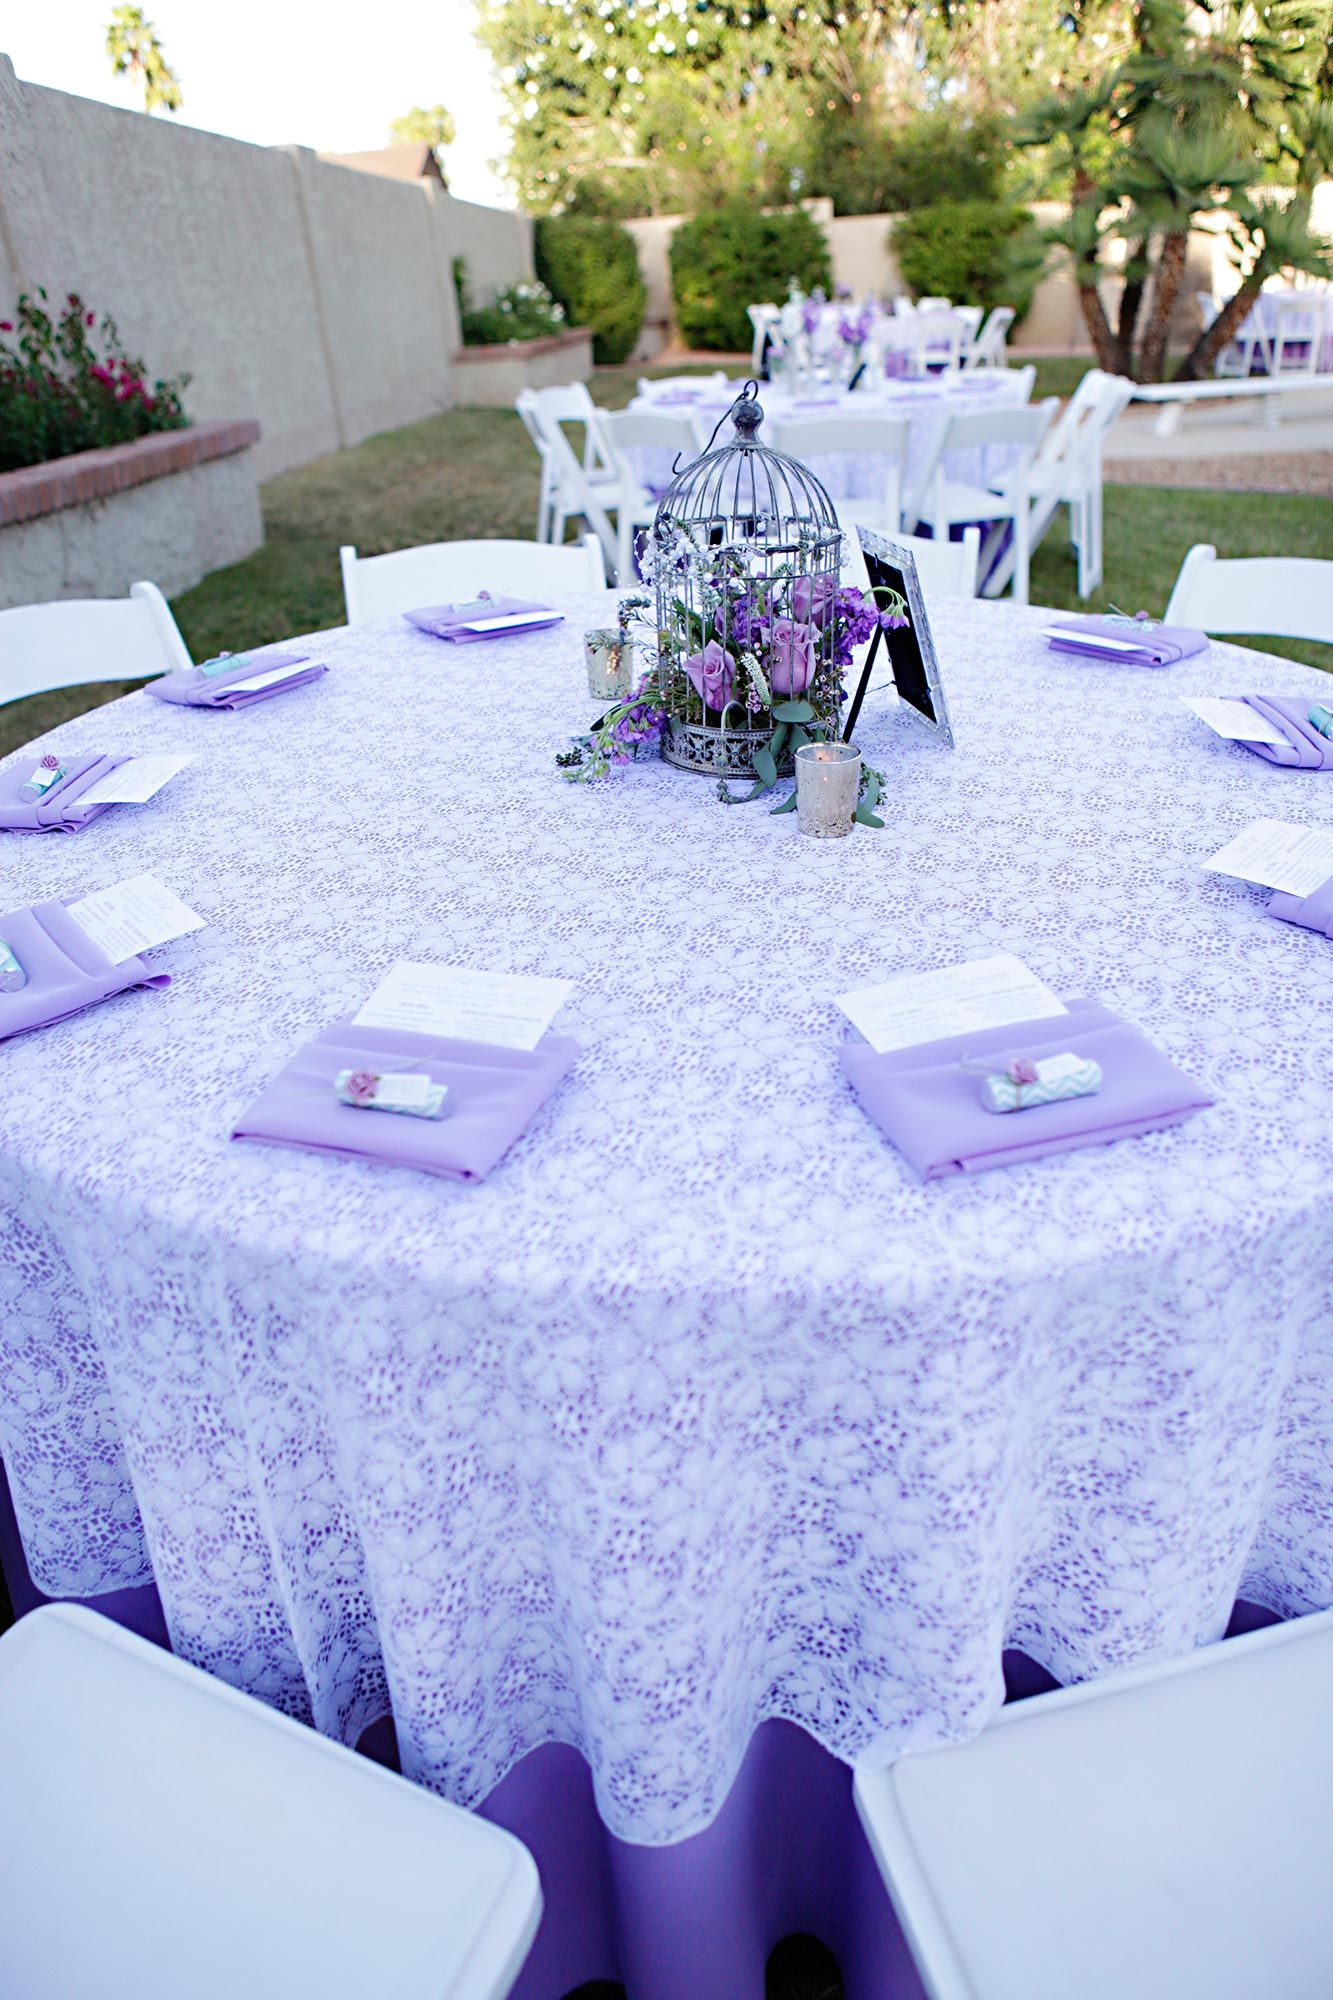 Lavender wedding decor ideas  The Pros and Cons of Throwing a Backyard Wedding  Purple wedding